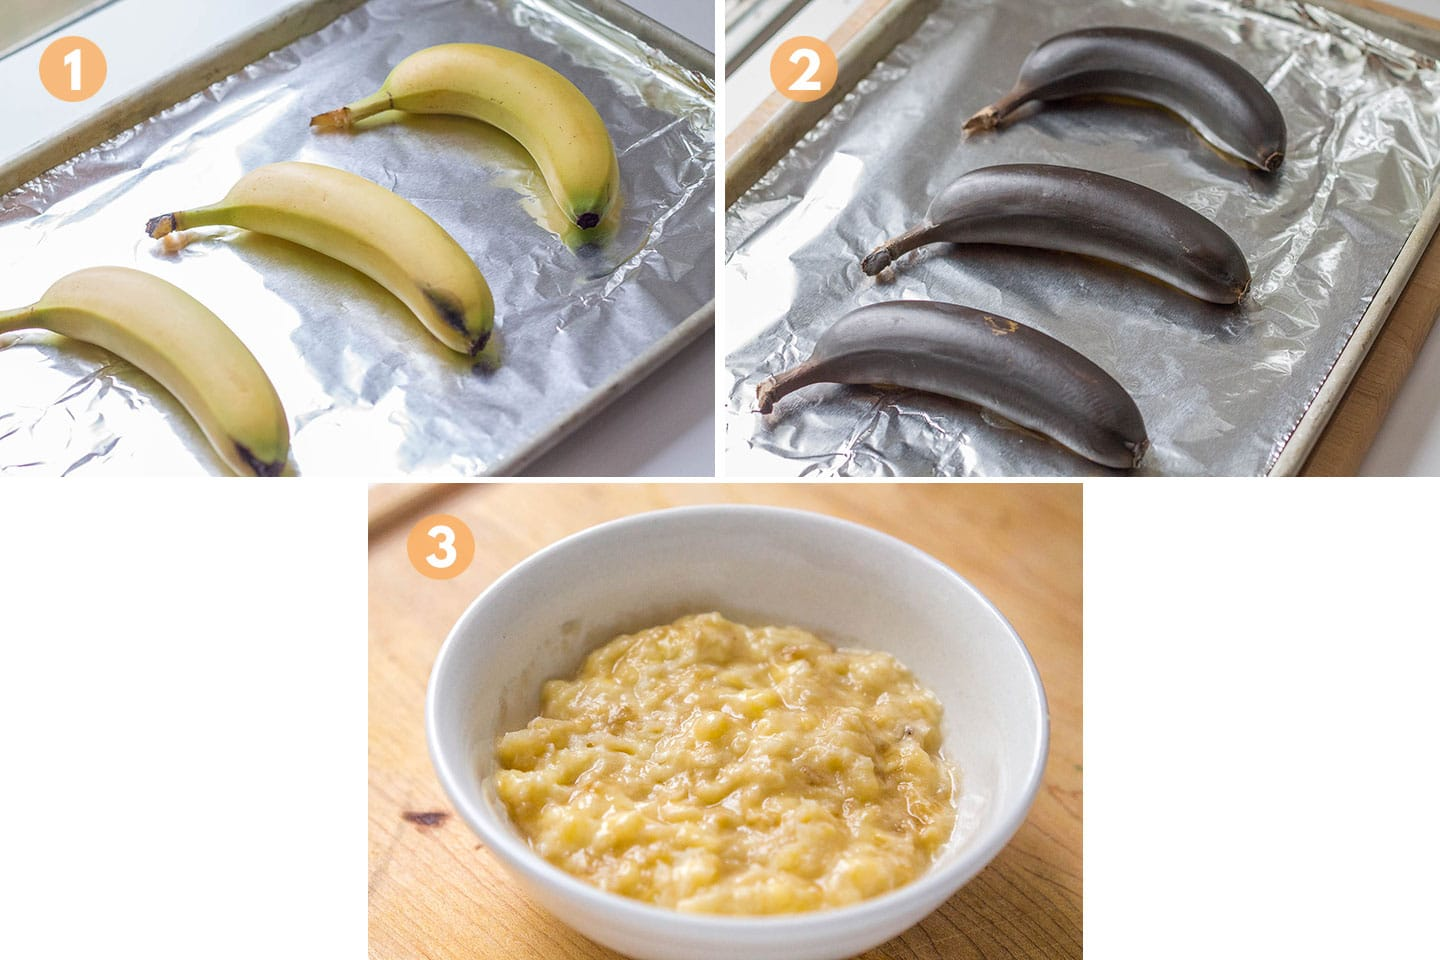 bananas being ripened in the oven.